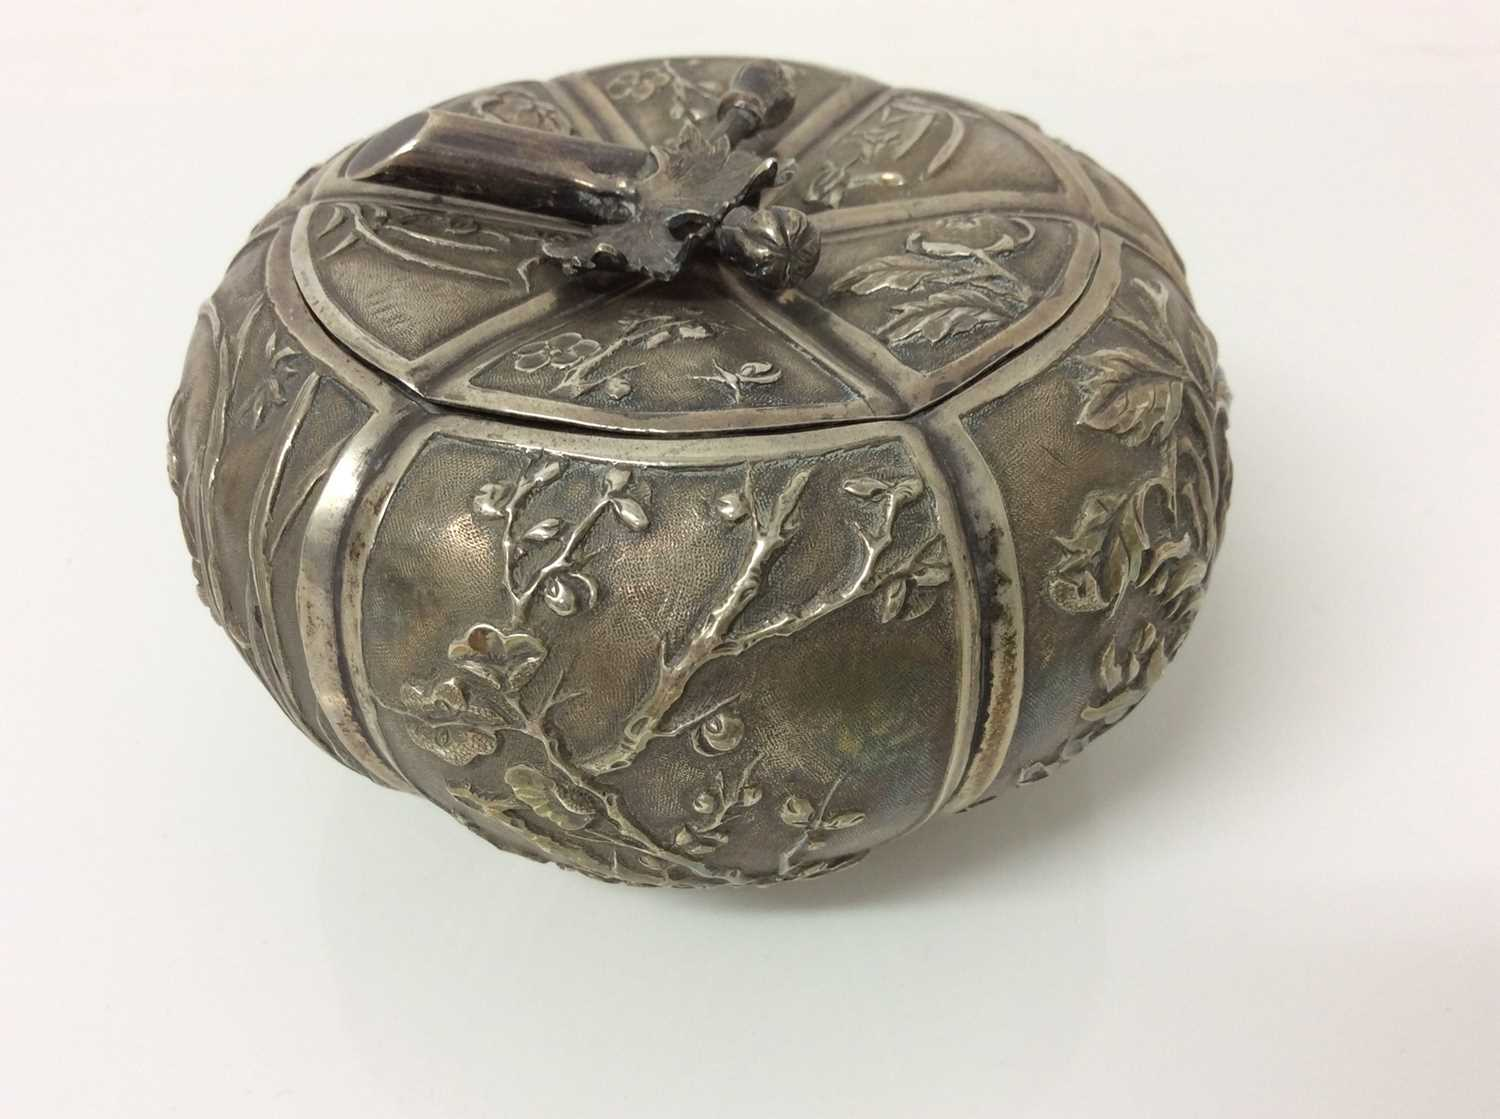 Late 19th/early 20th century Chinese silver lidded pot - Image 5 of 10